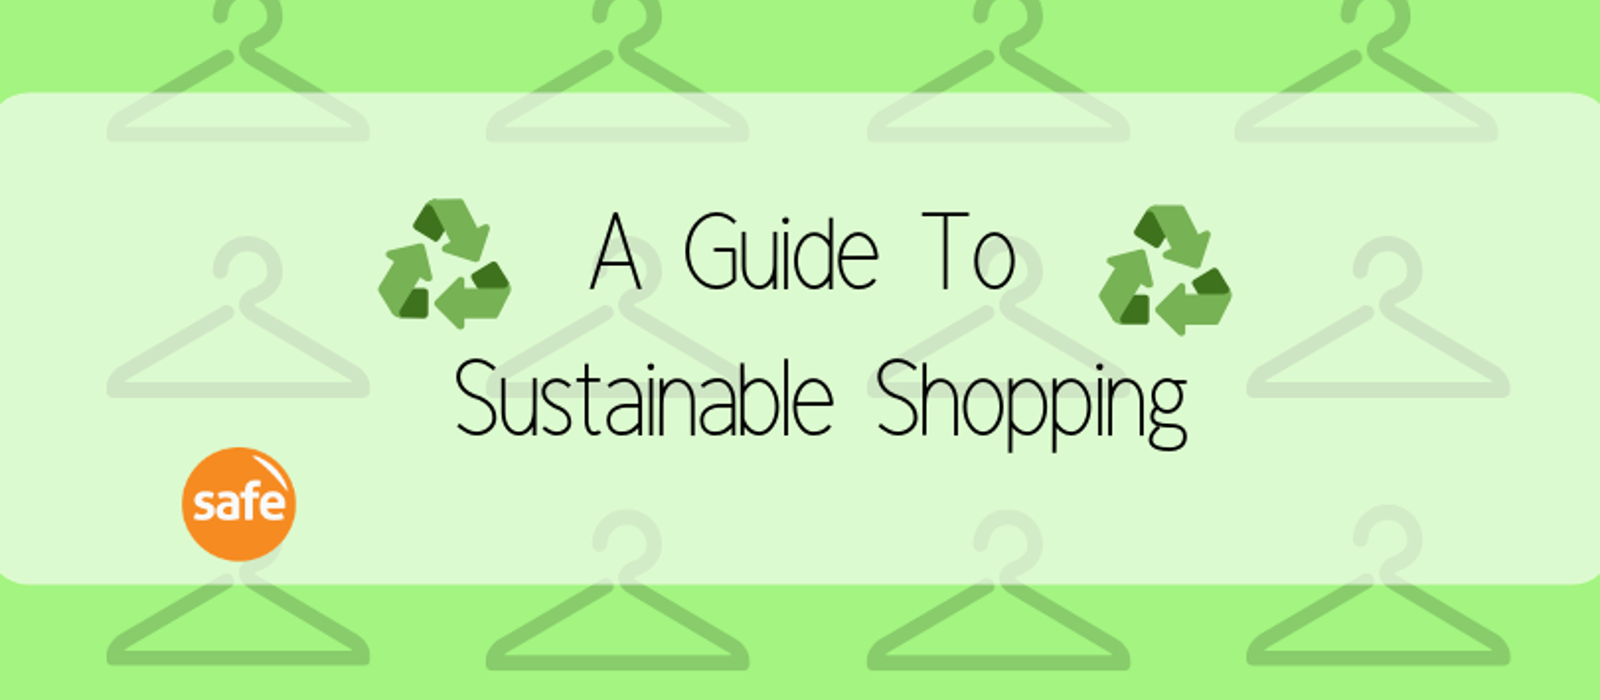 A Guide to Sustainable Shopping